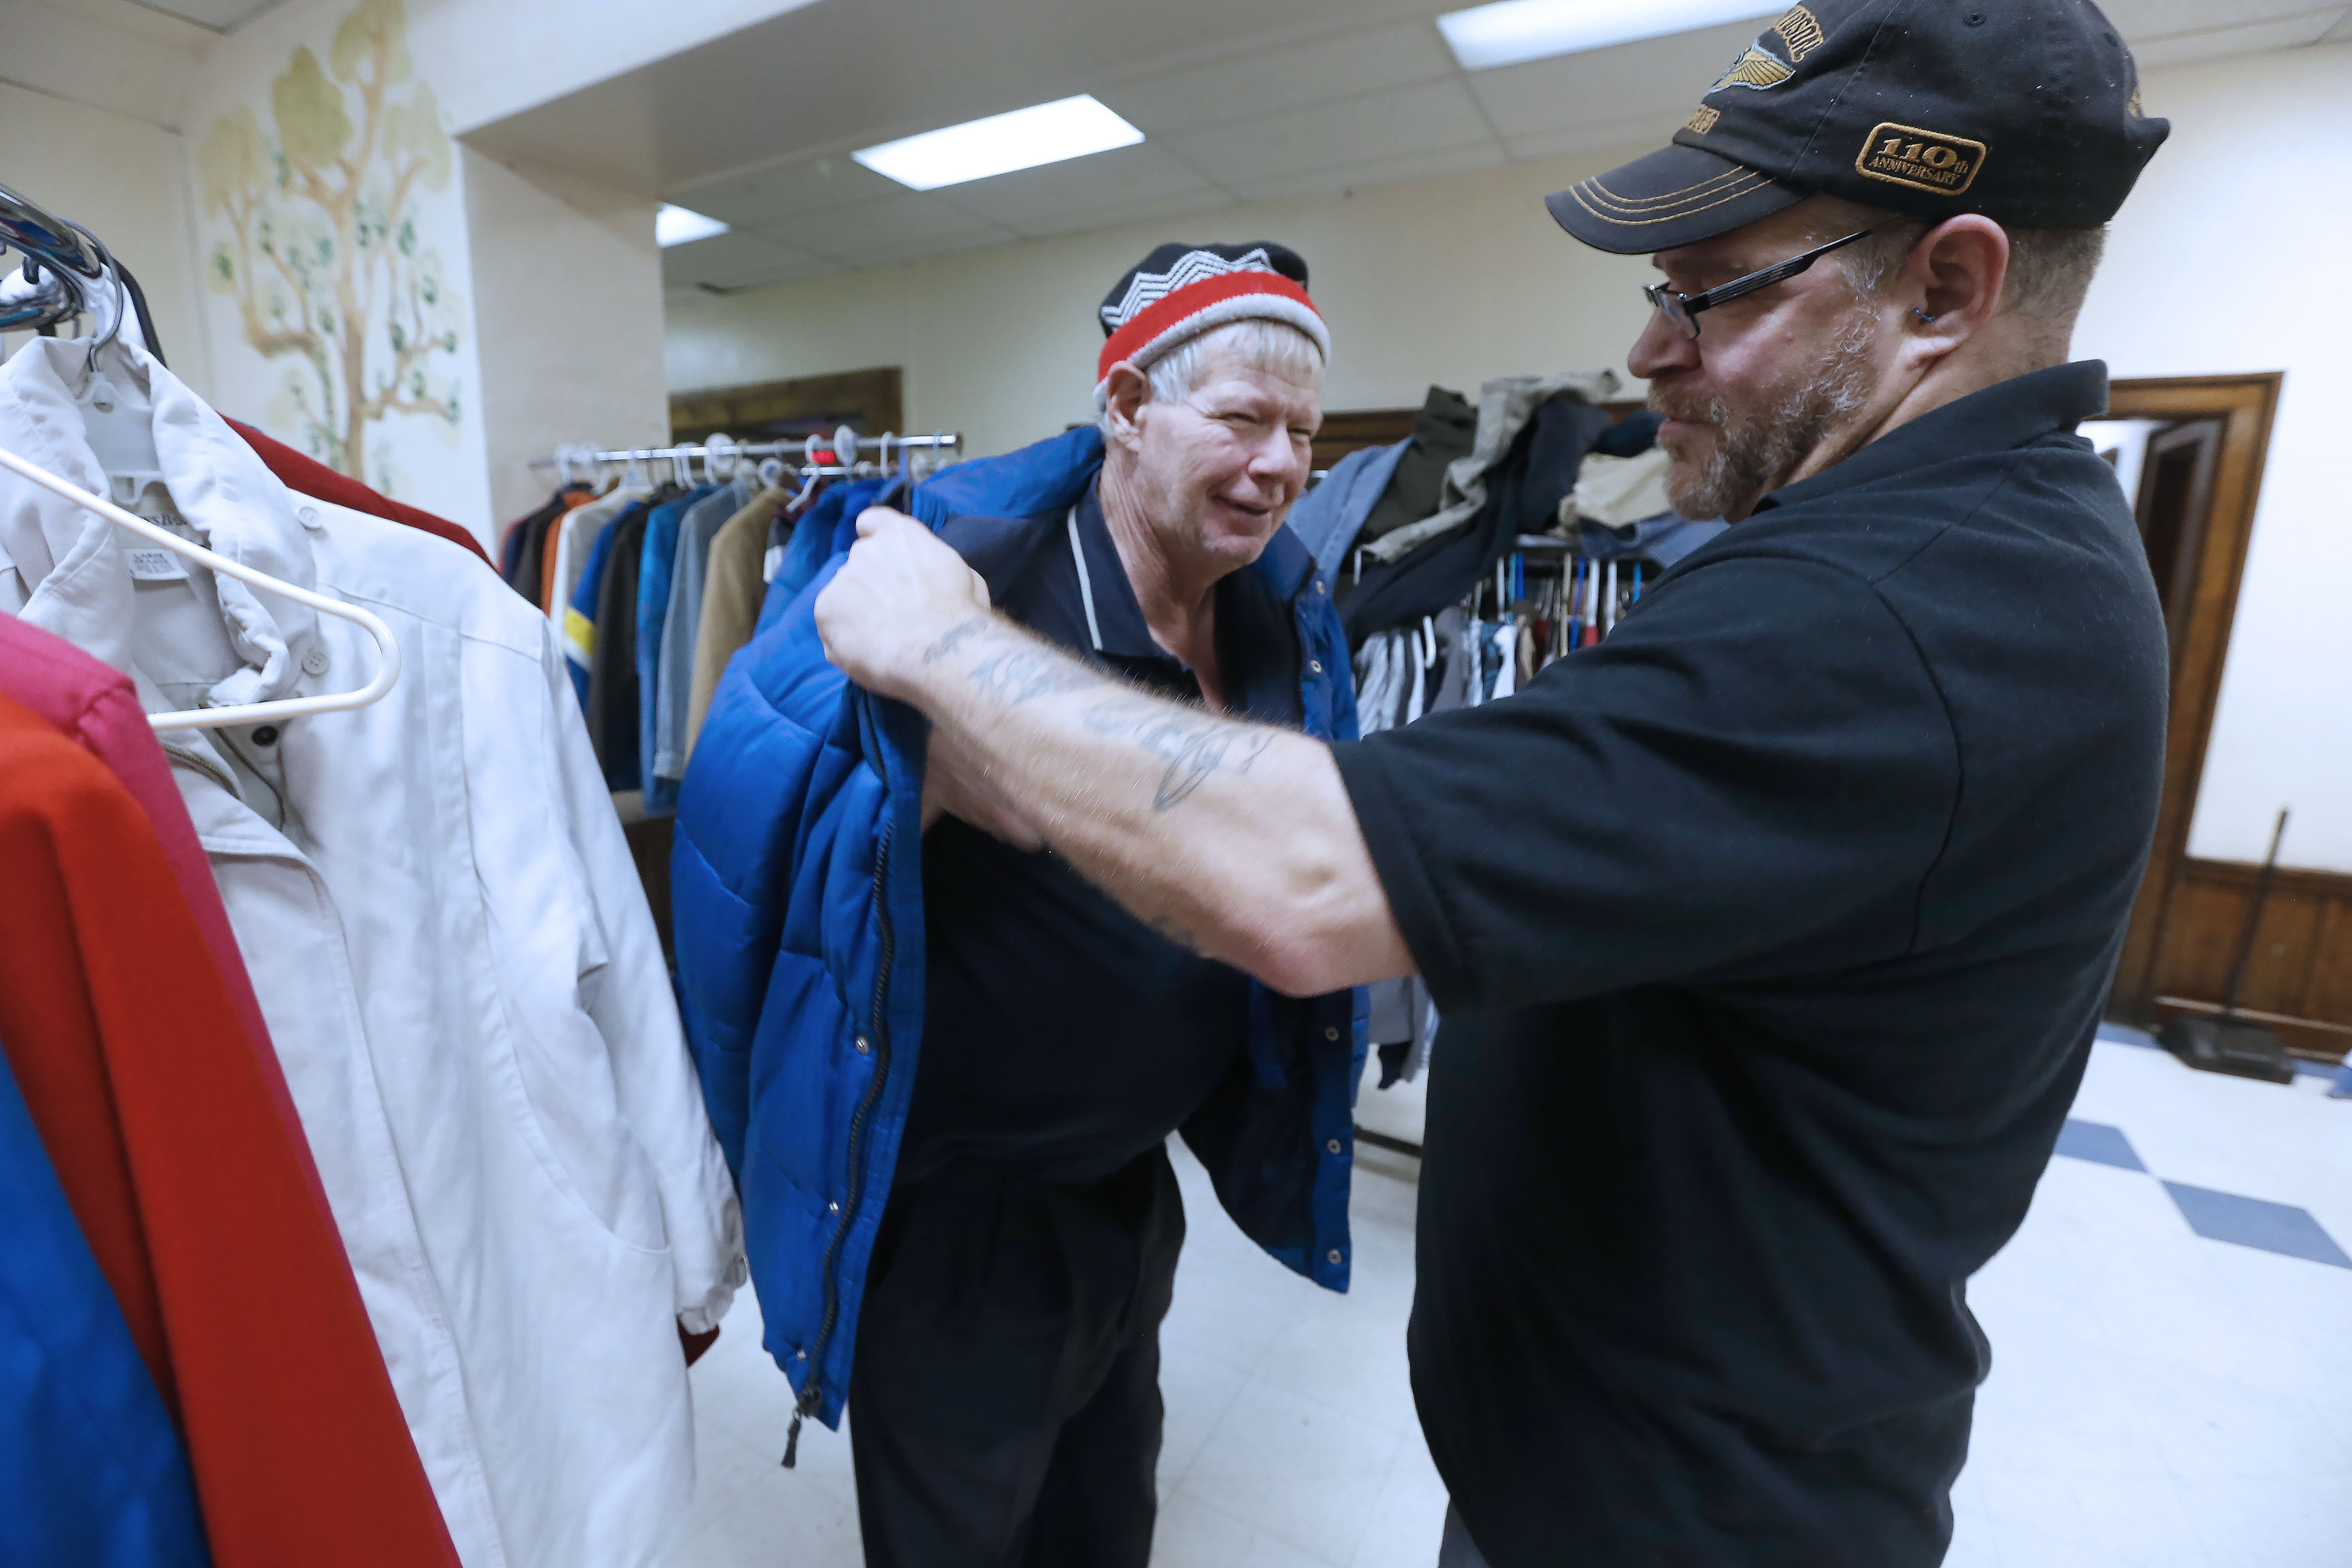 John Bornhoeft, right, building manager at Niagara Gospel Rescue Mission's shelter for homeless men, helps shelter resident Roger Sax pick out a free coat from racks at the facility on Tuesday, Jan. 3, 2017.  The mission recently received a $1.7 million grant to fix up the shelter for homeless men that it runs in the former YMCA building in Niagara Falls. (Robert Kirkham/Buffalo News)